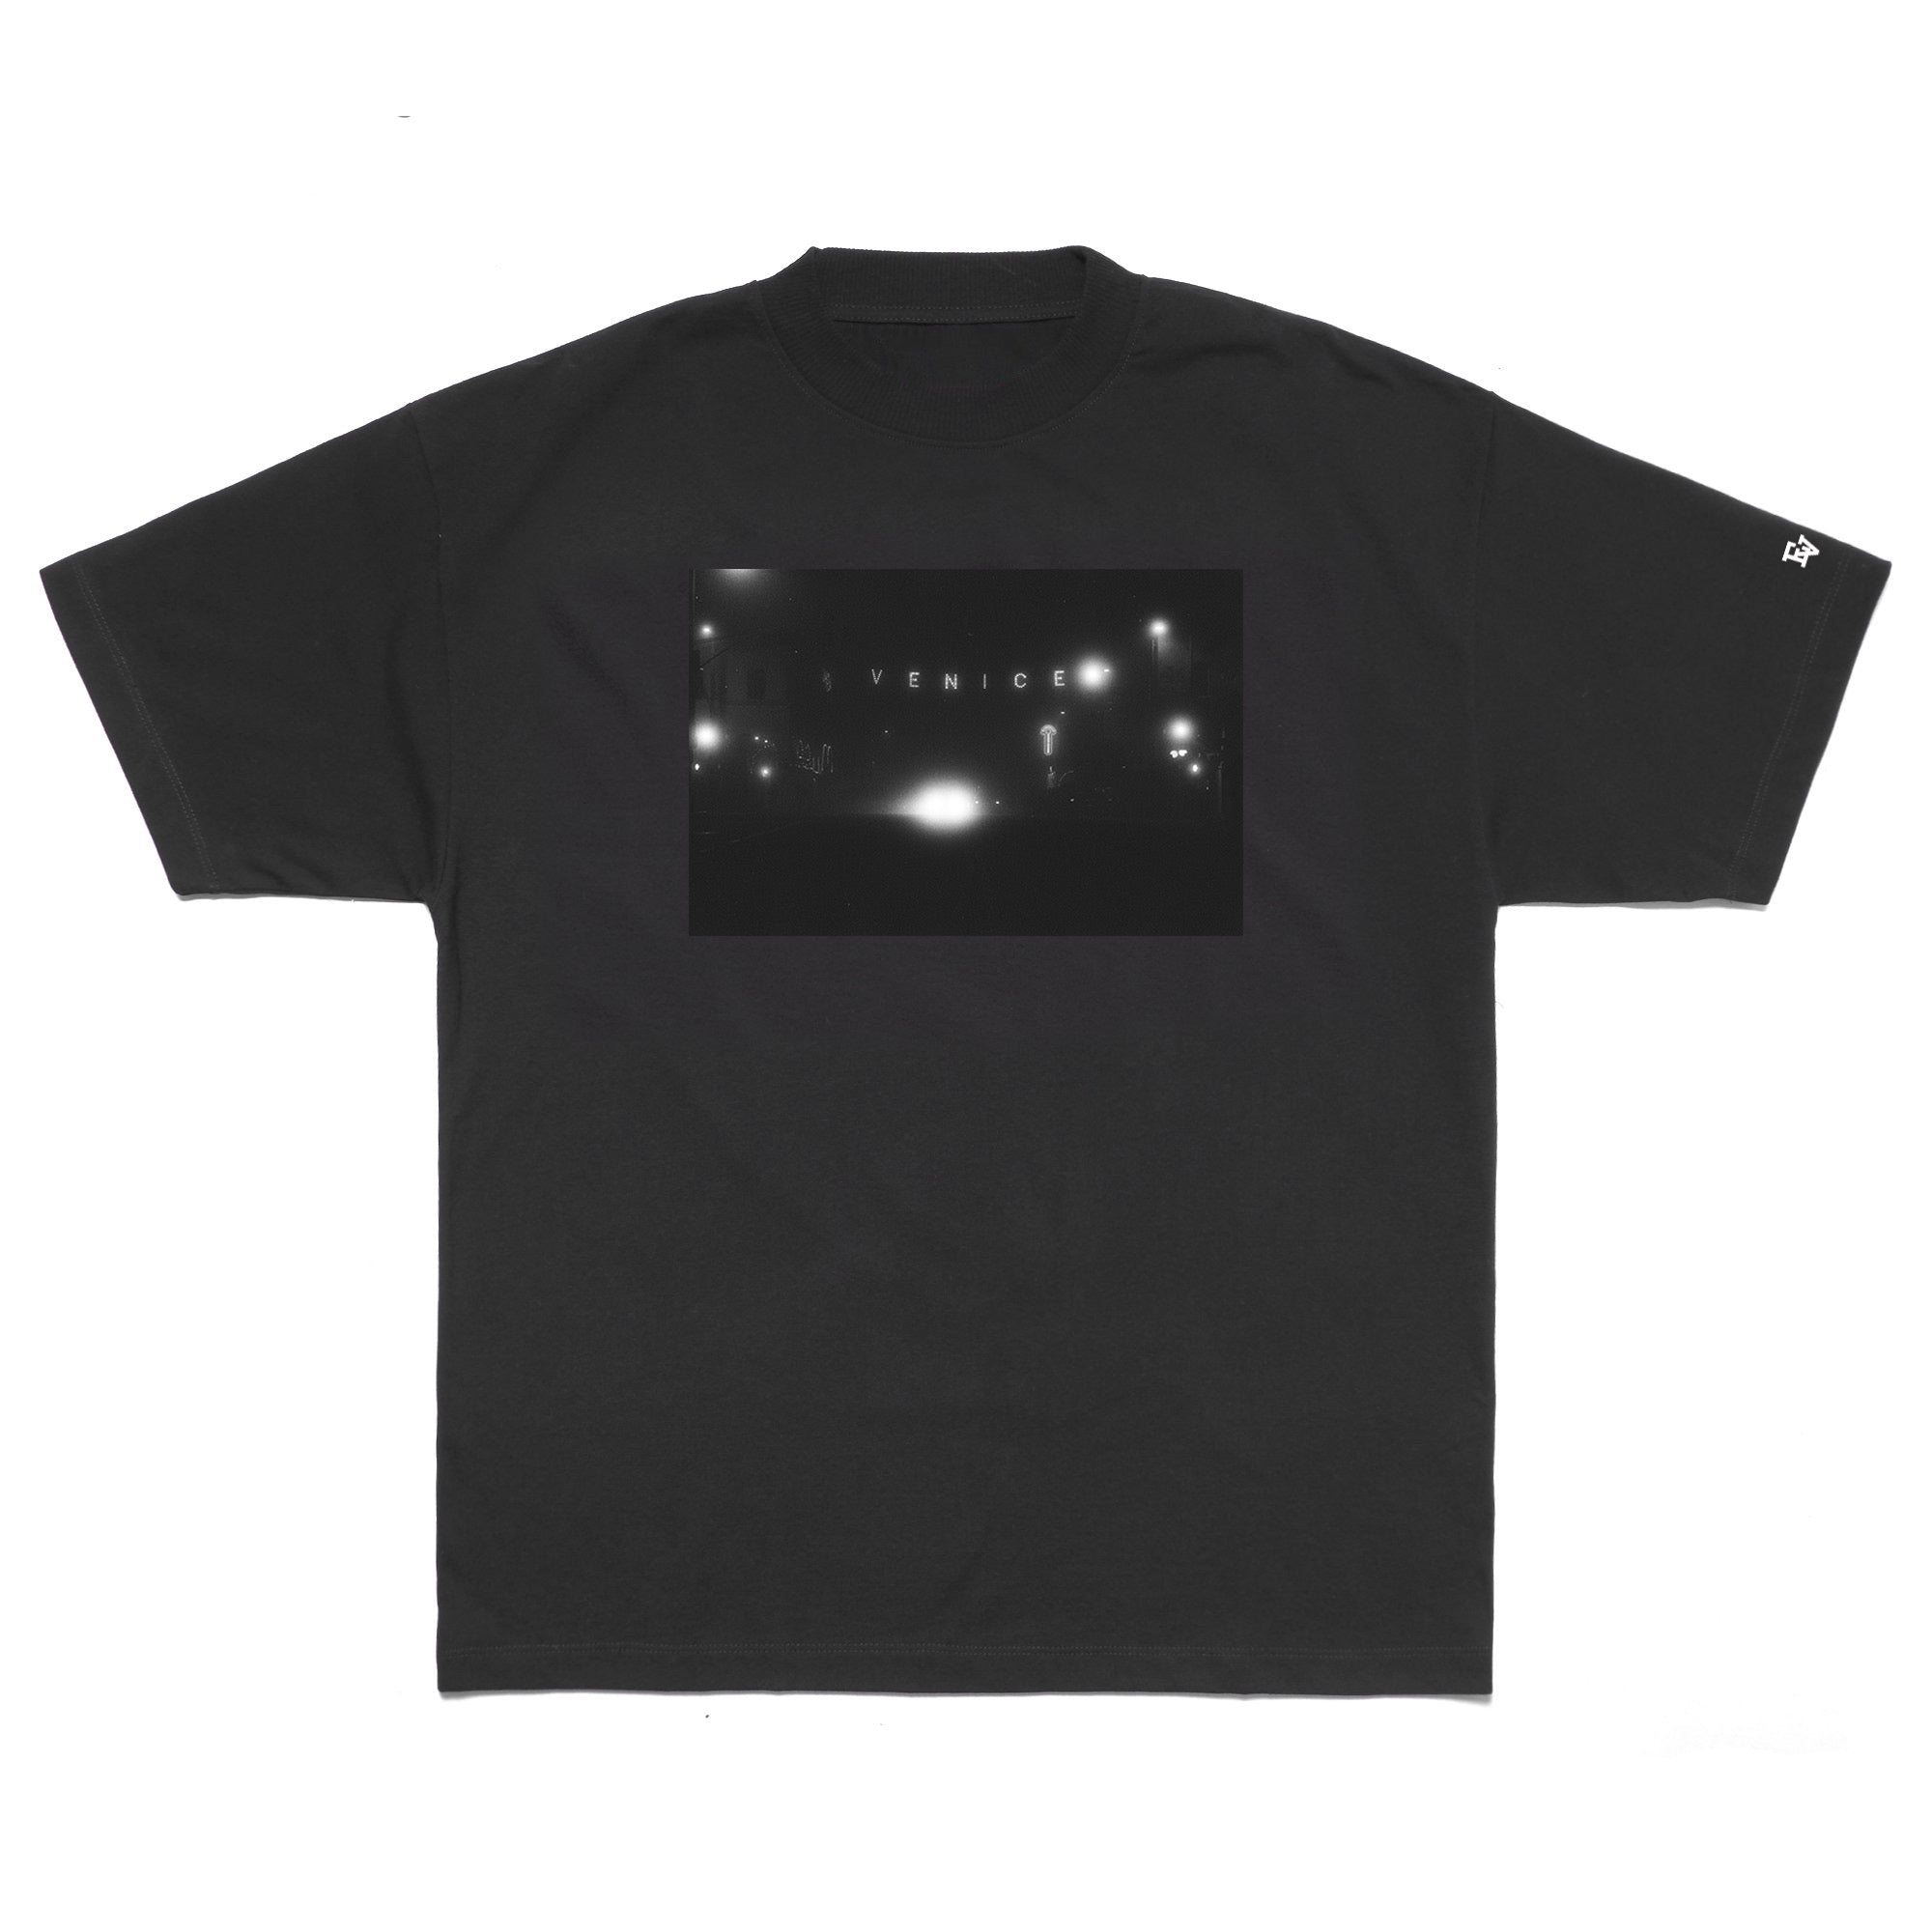 UNDEREXPOSED #5 - LIMITED EDITION T-SHIRT